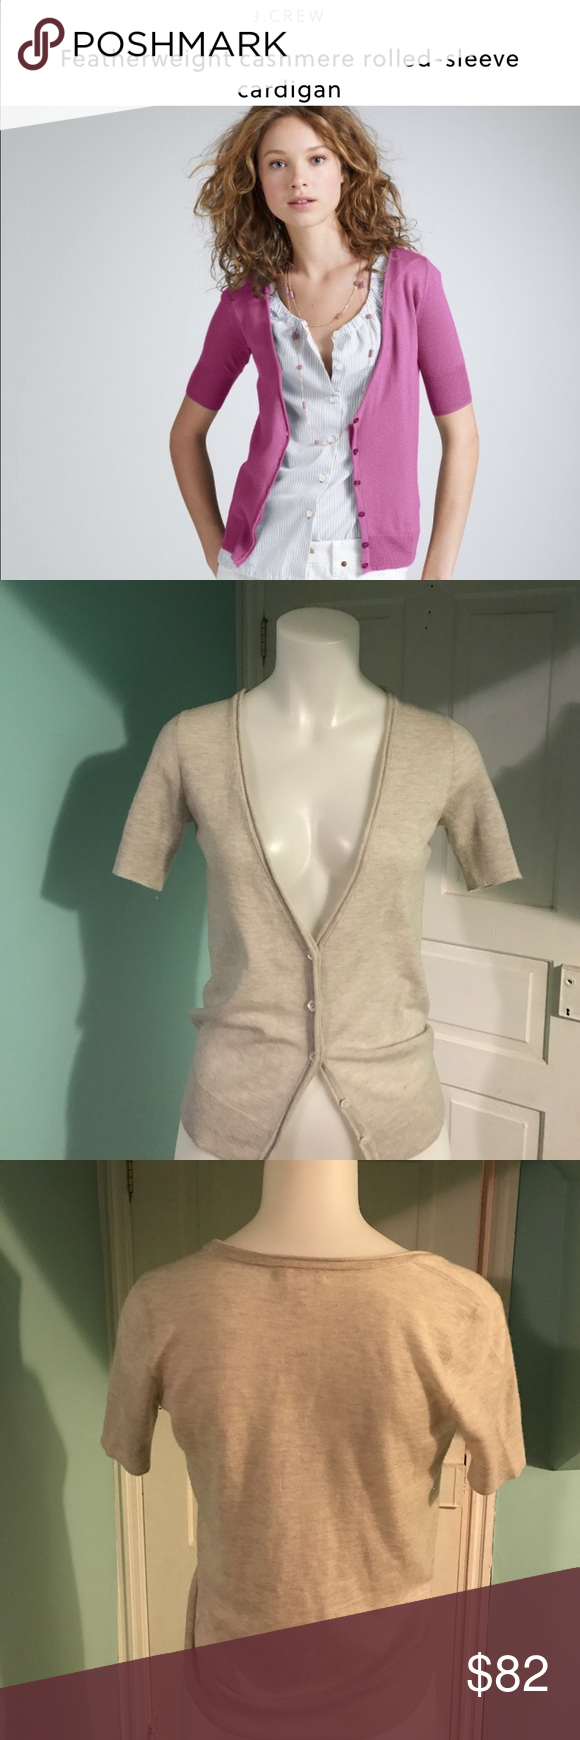 J. Crew Featherweight cashmere cardigan Beige XS J. Crew Featherweight cashmere cardigan Beige XS. Excellent. 100% Cashmere. J. Crew Sweaters Cardigans